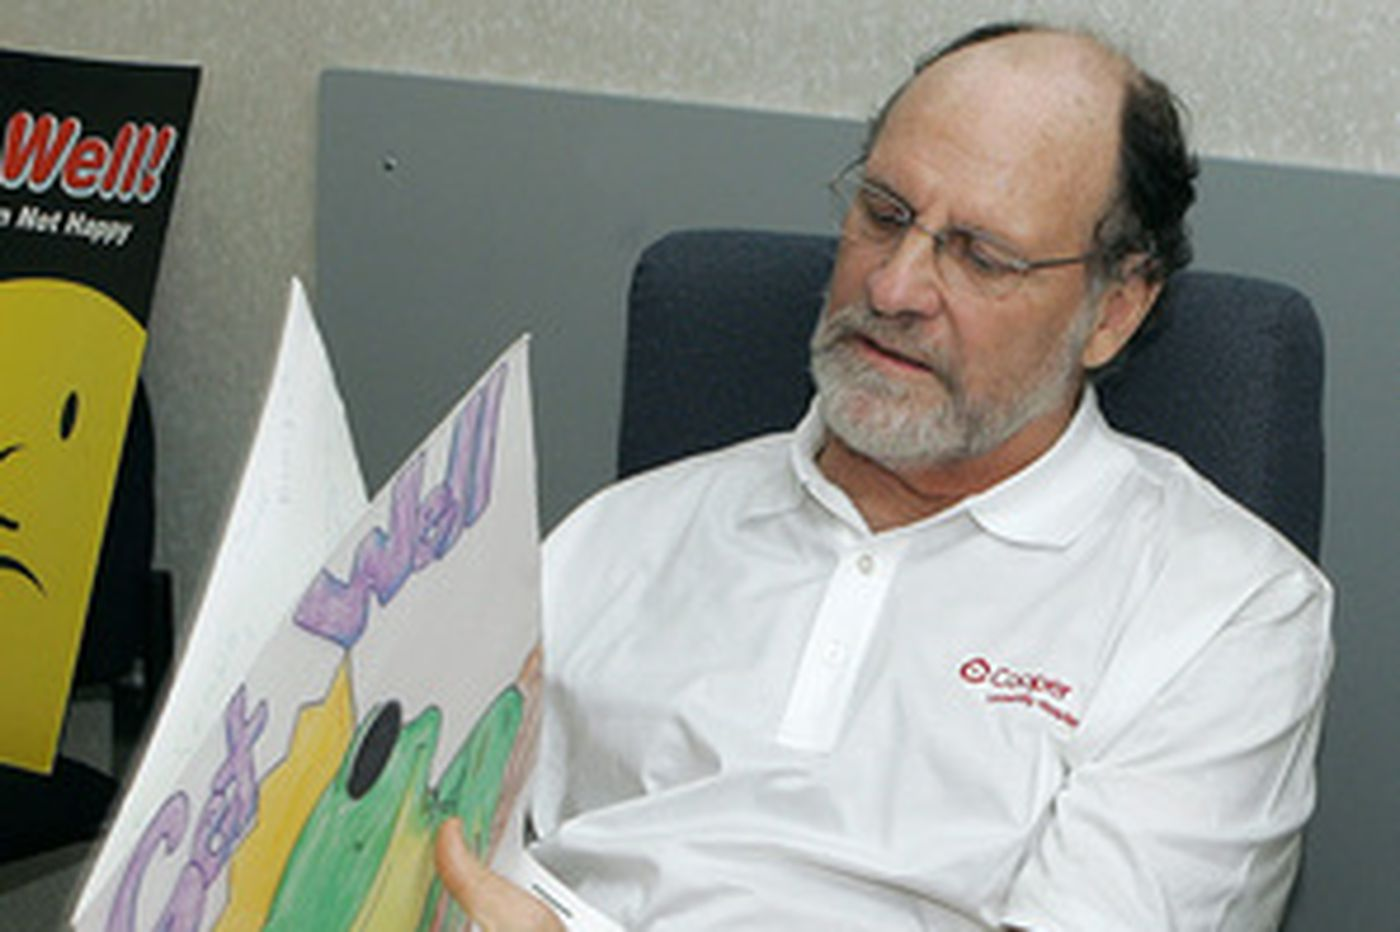 Corzine embraces second chance at life